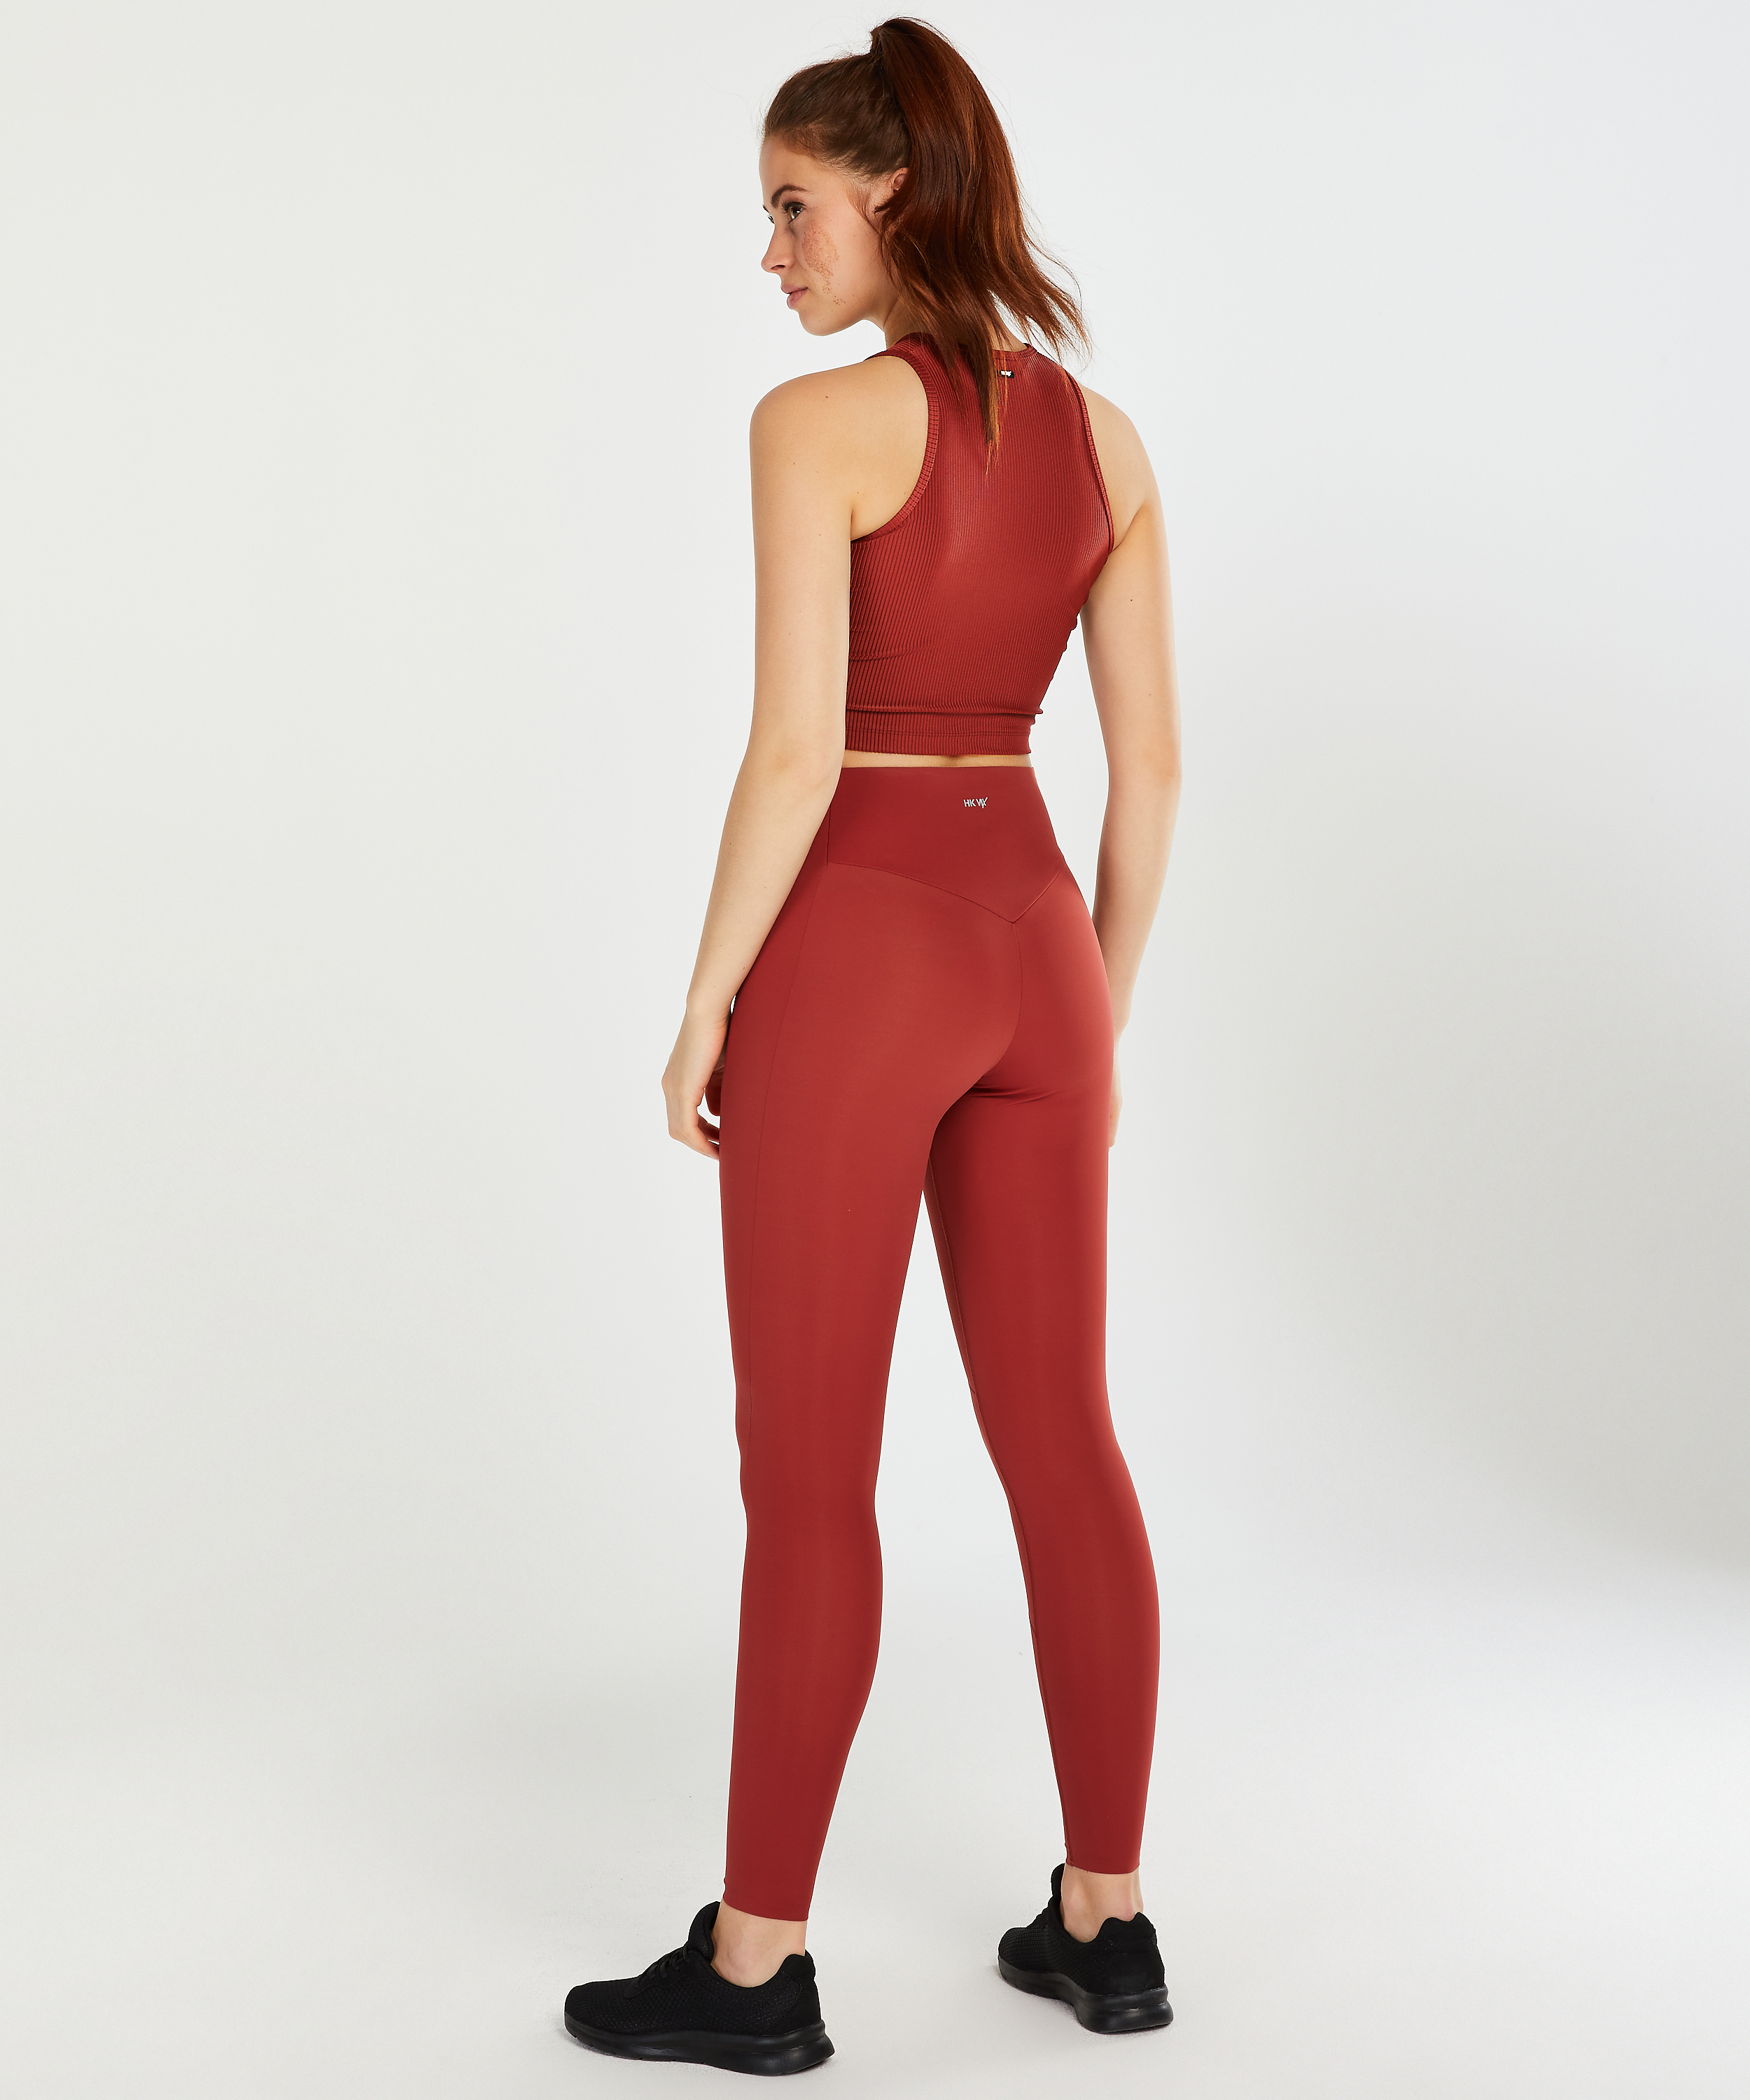 HKMX Sport cropped tank top Twisted Rib, Rouge, main